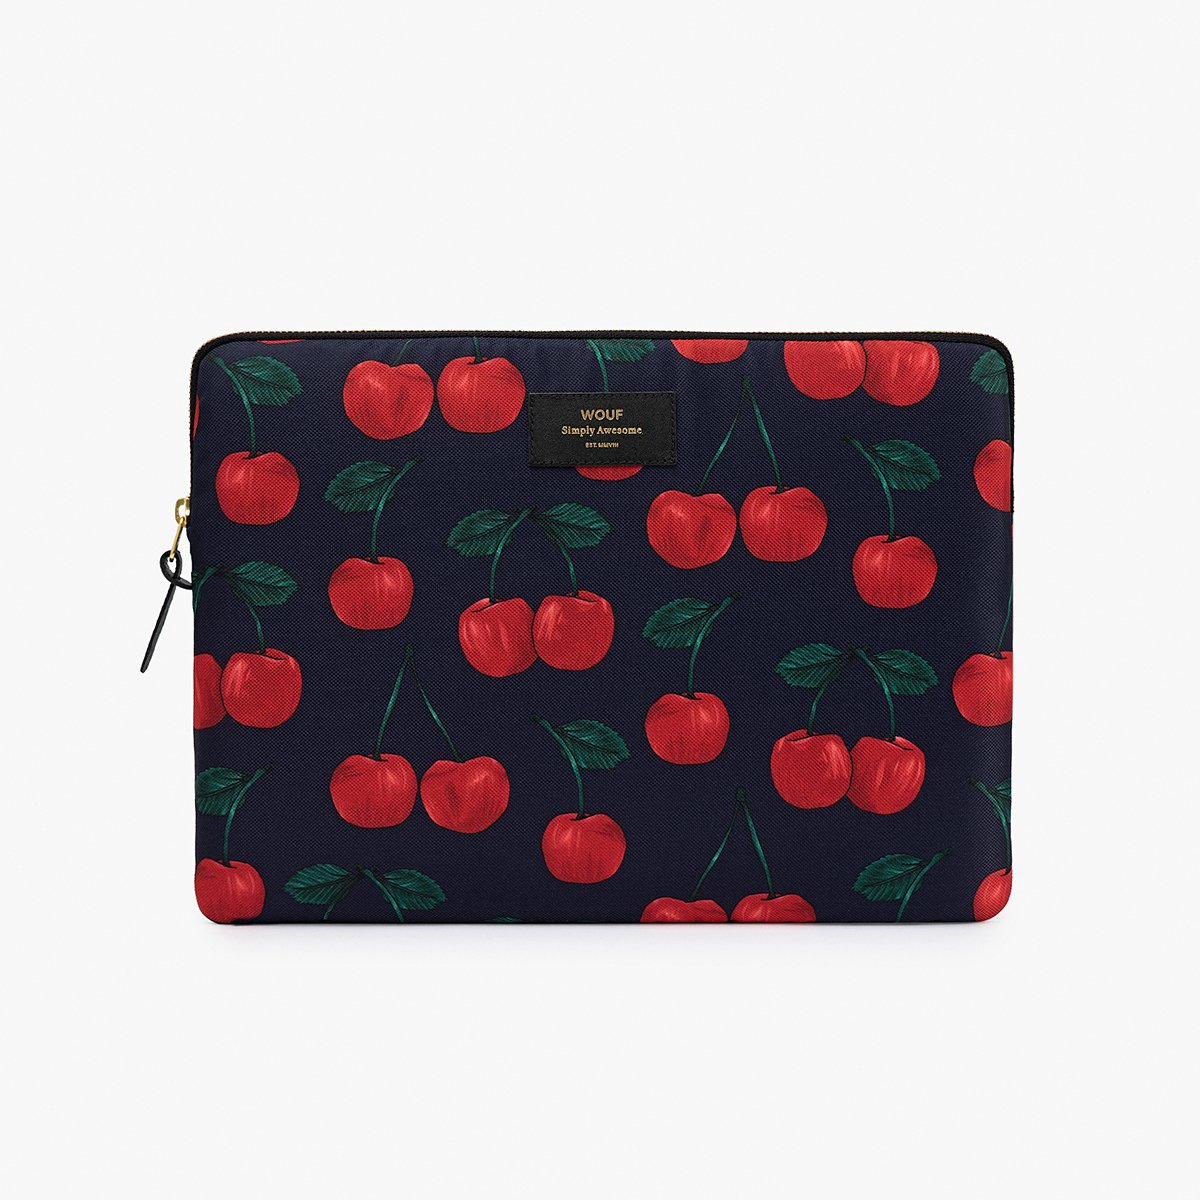 "Pouzdro na notebook 13"" Cherries WOUF"